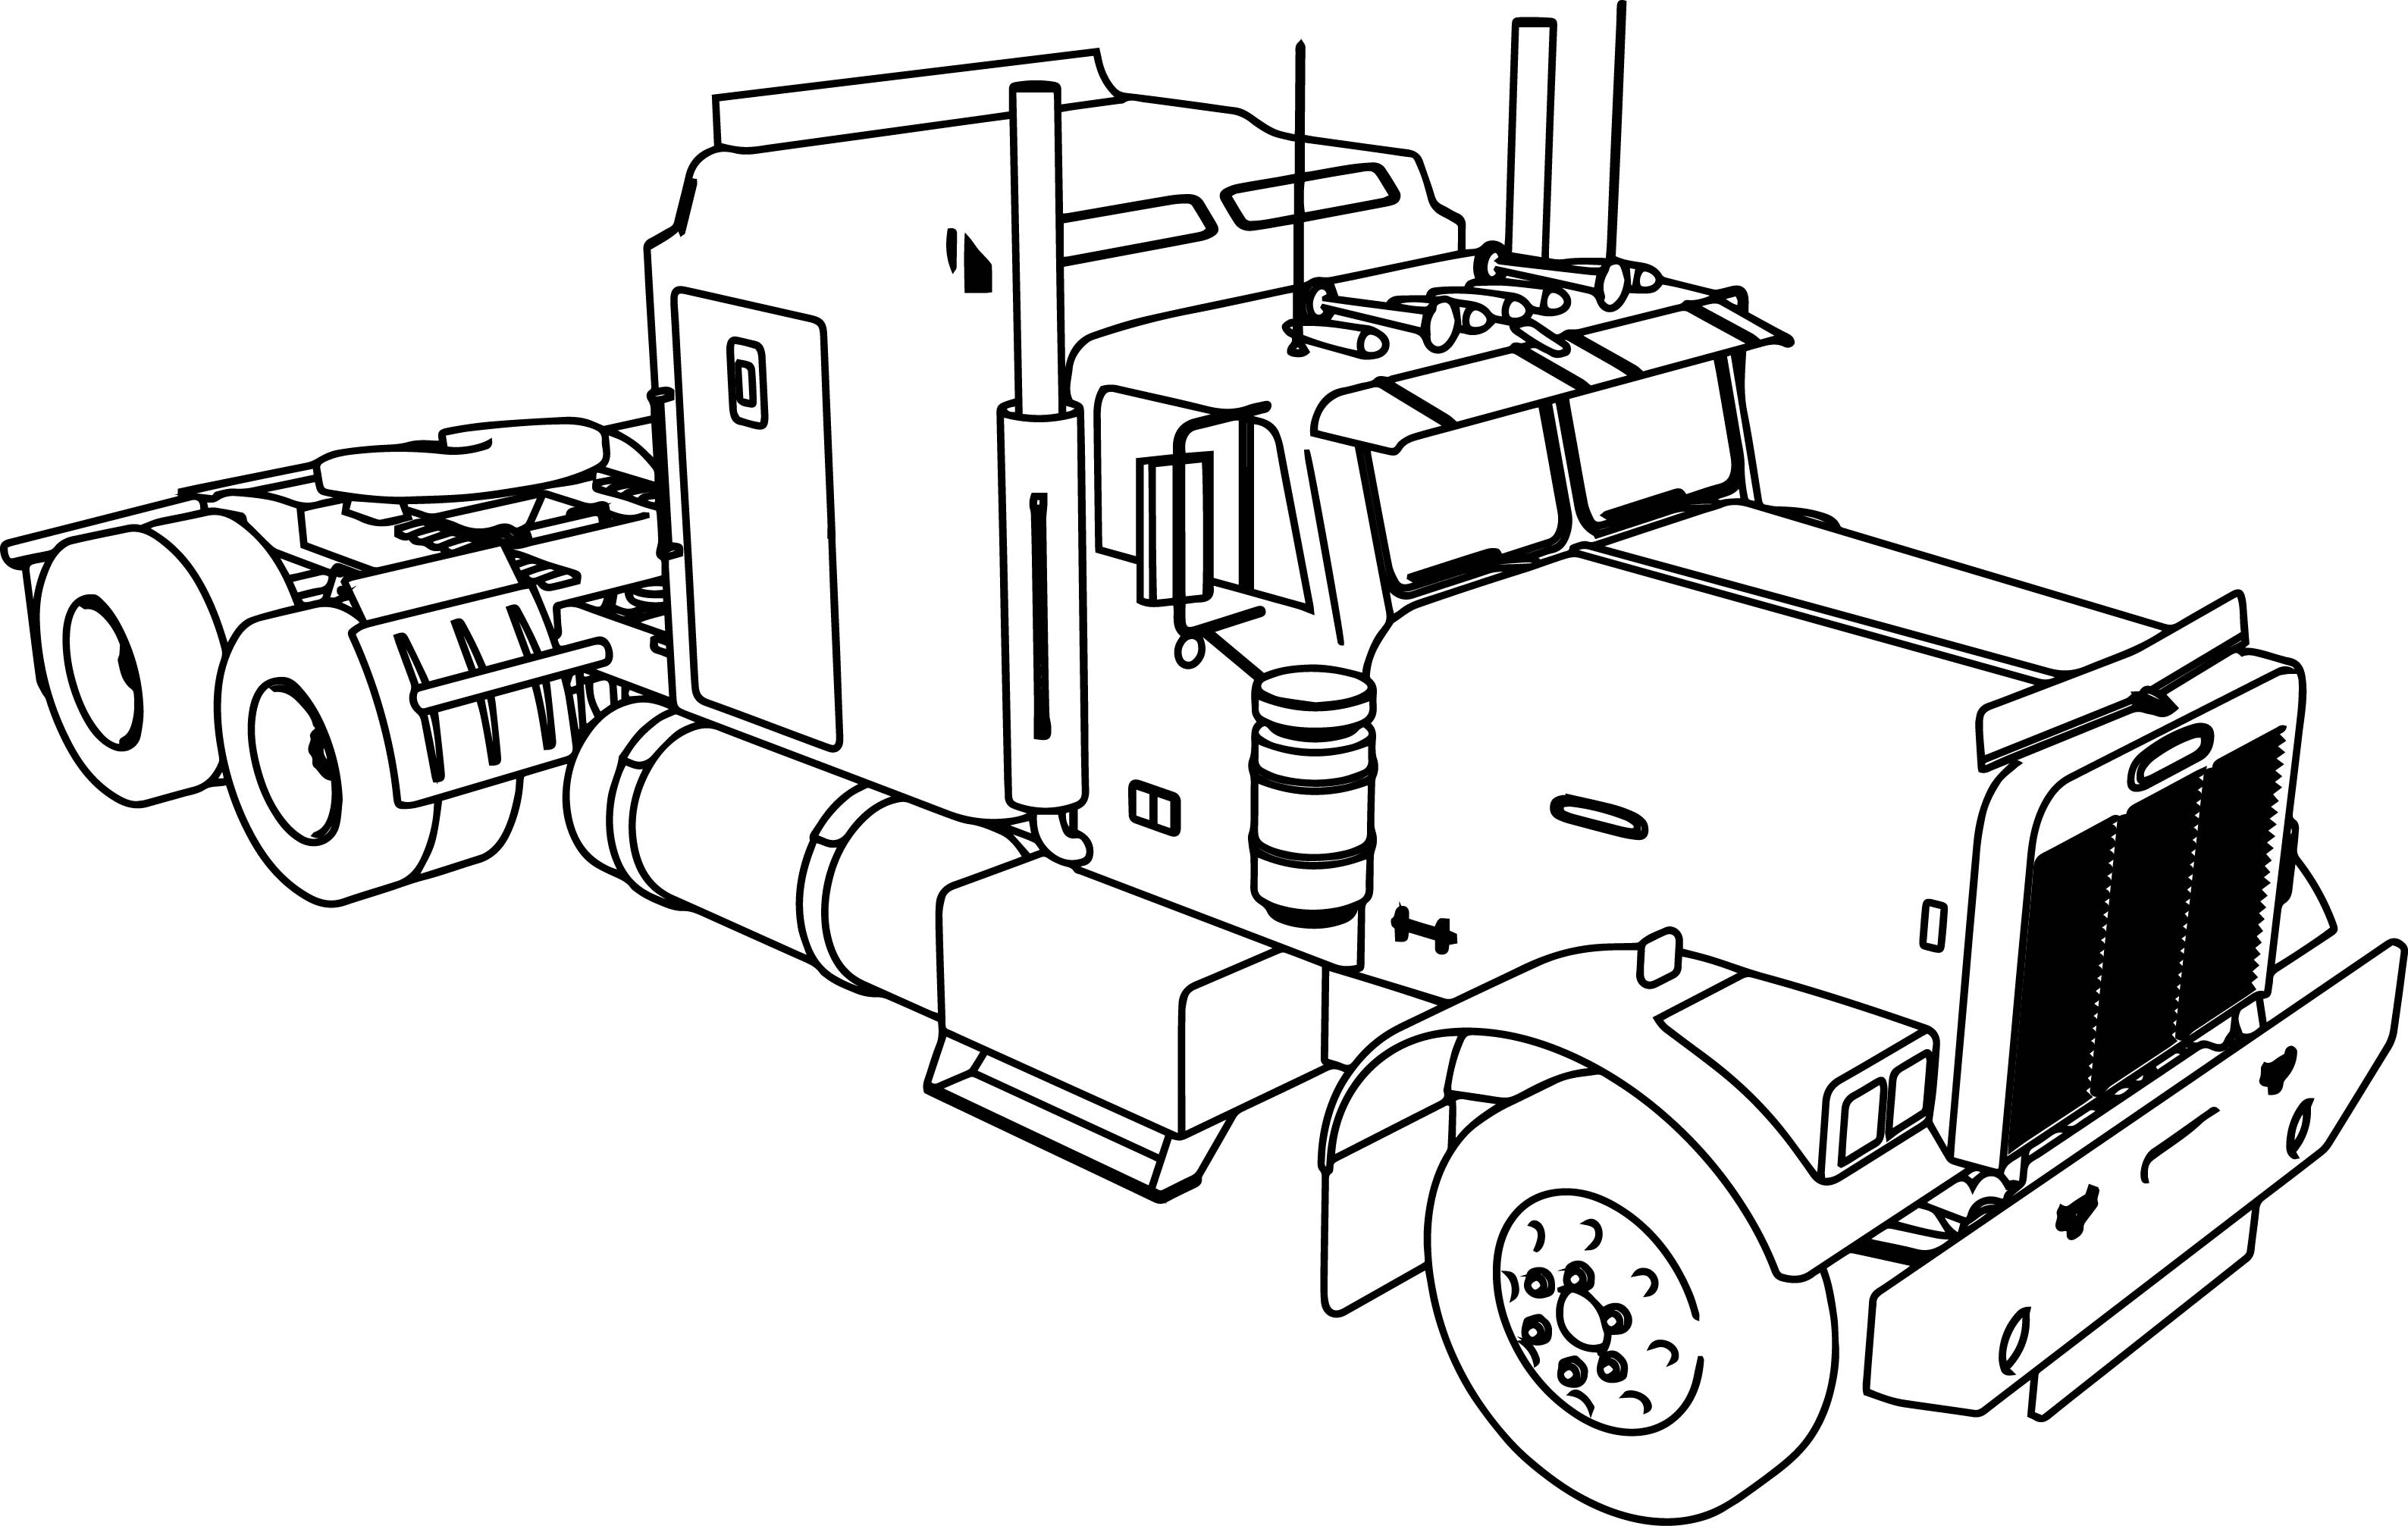 3176x2013 Ford Pickup Truck Coloring Page Freecolorngpages.co